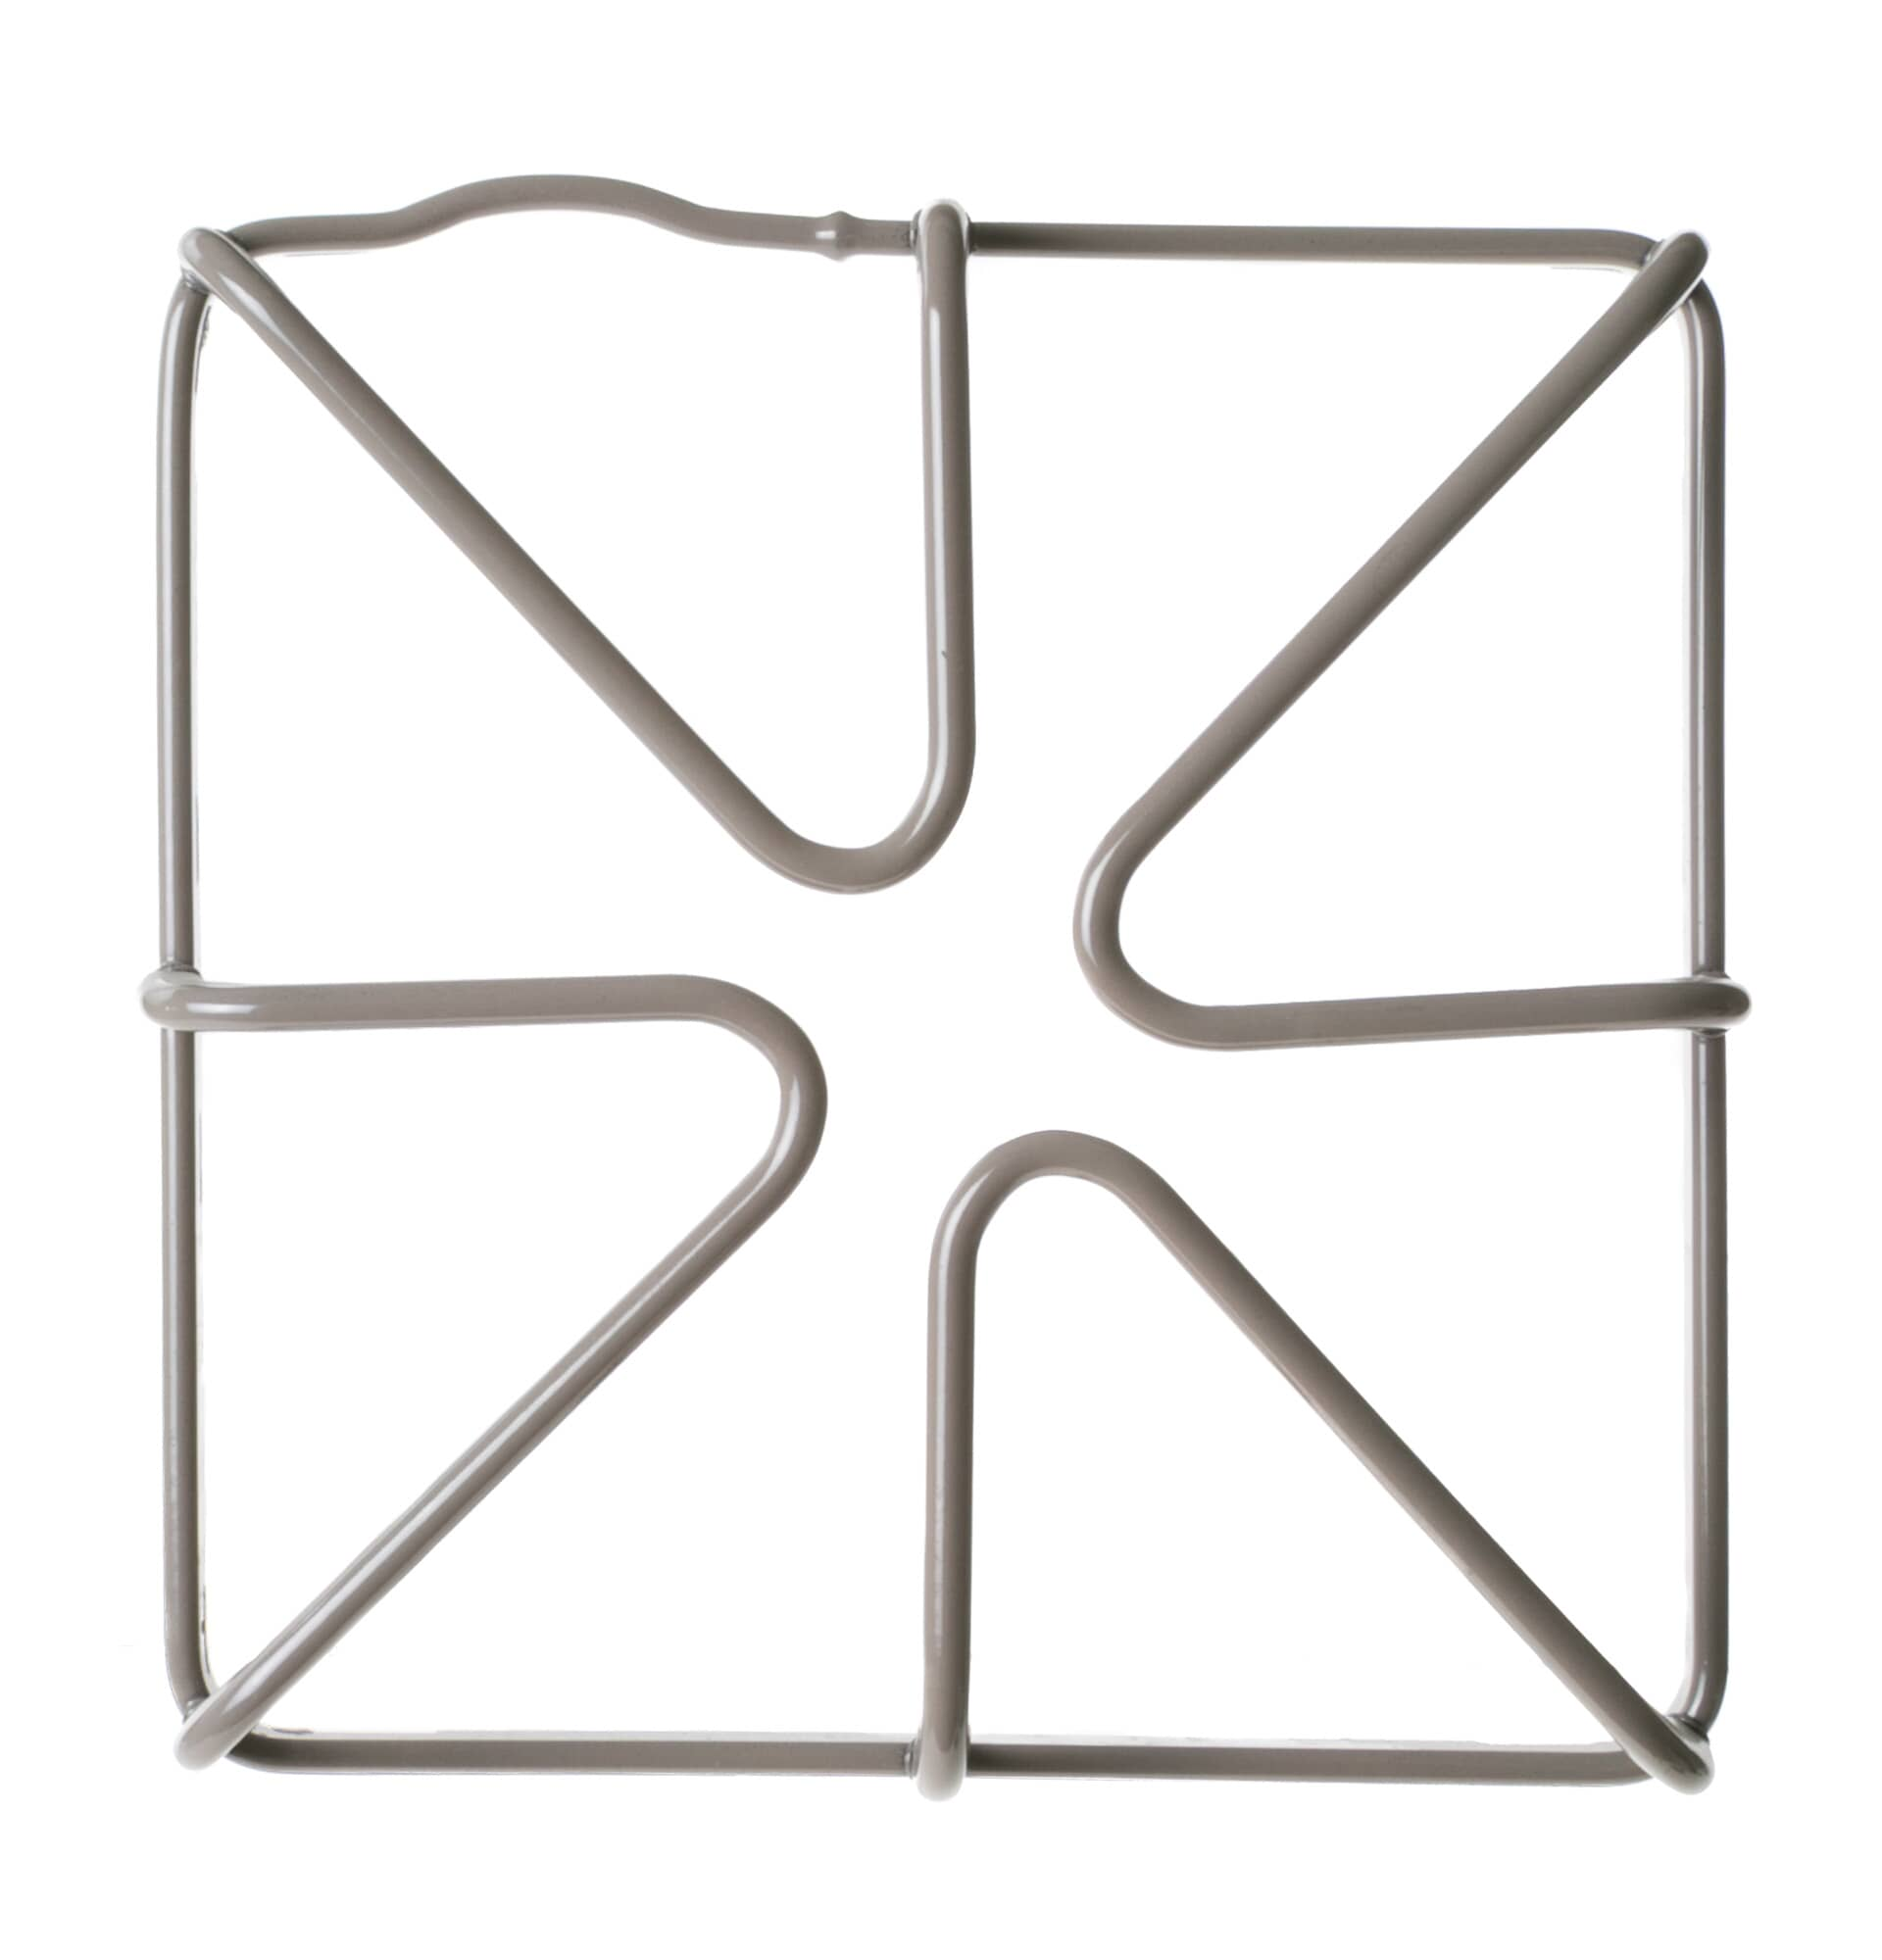 GE ApplianceWB31K10032GENERAL ELECTCRIC GRATE (TAUPE)